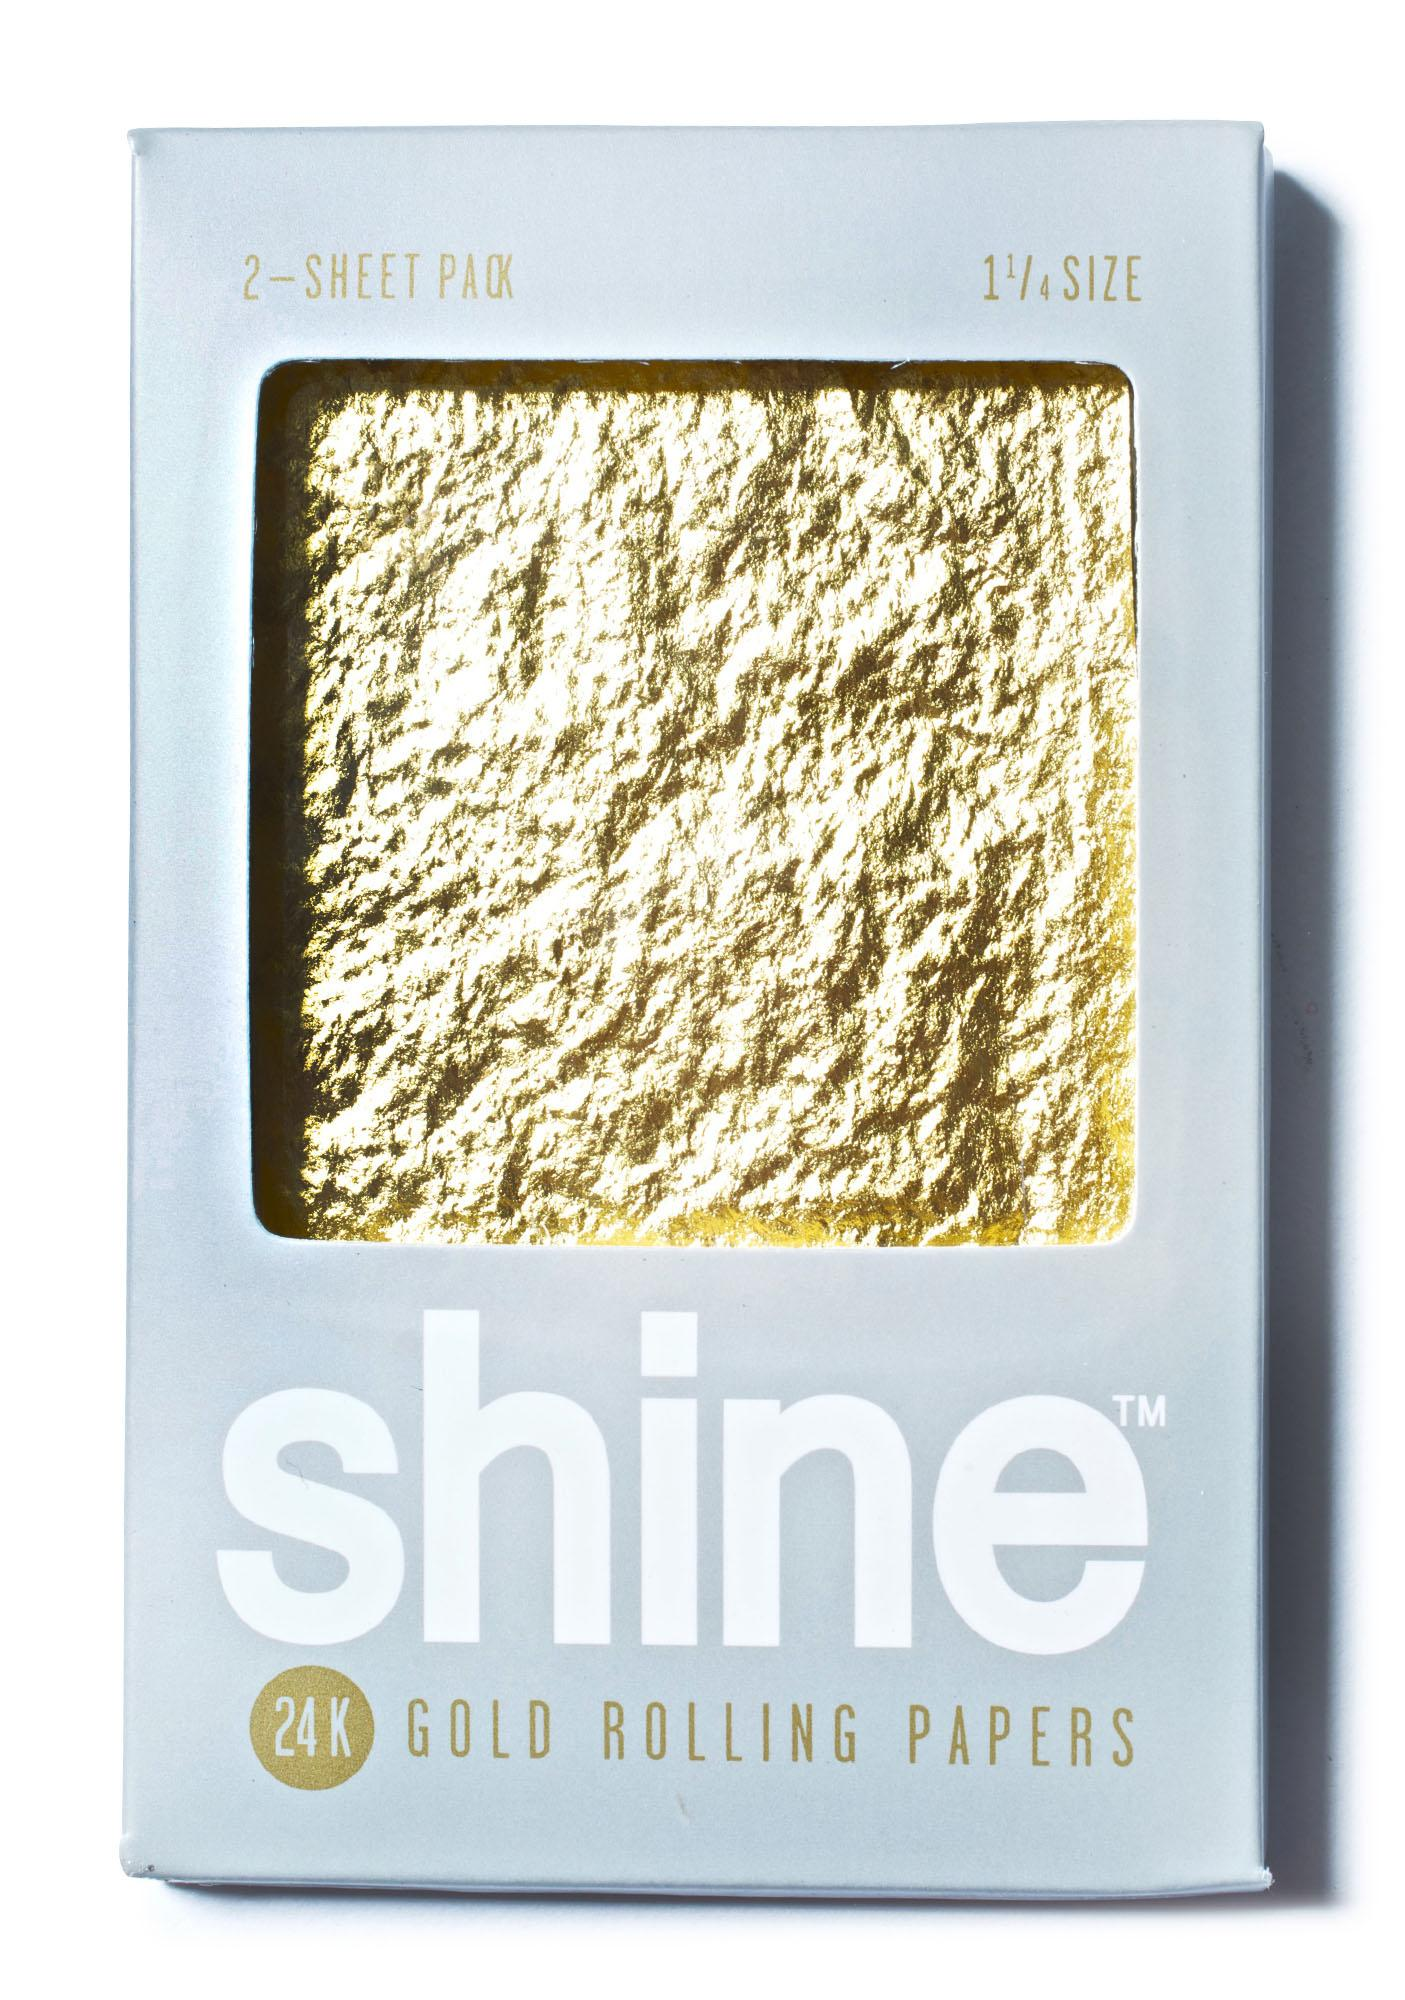 Shine 24k Gold Papers 2-Sheet Pack